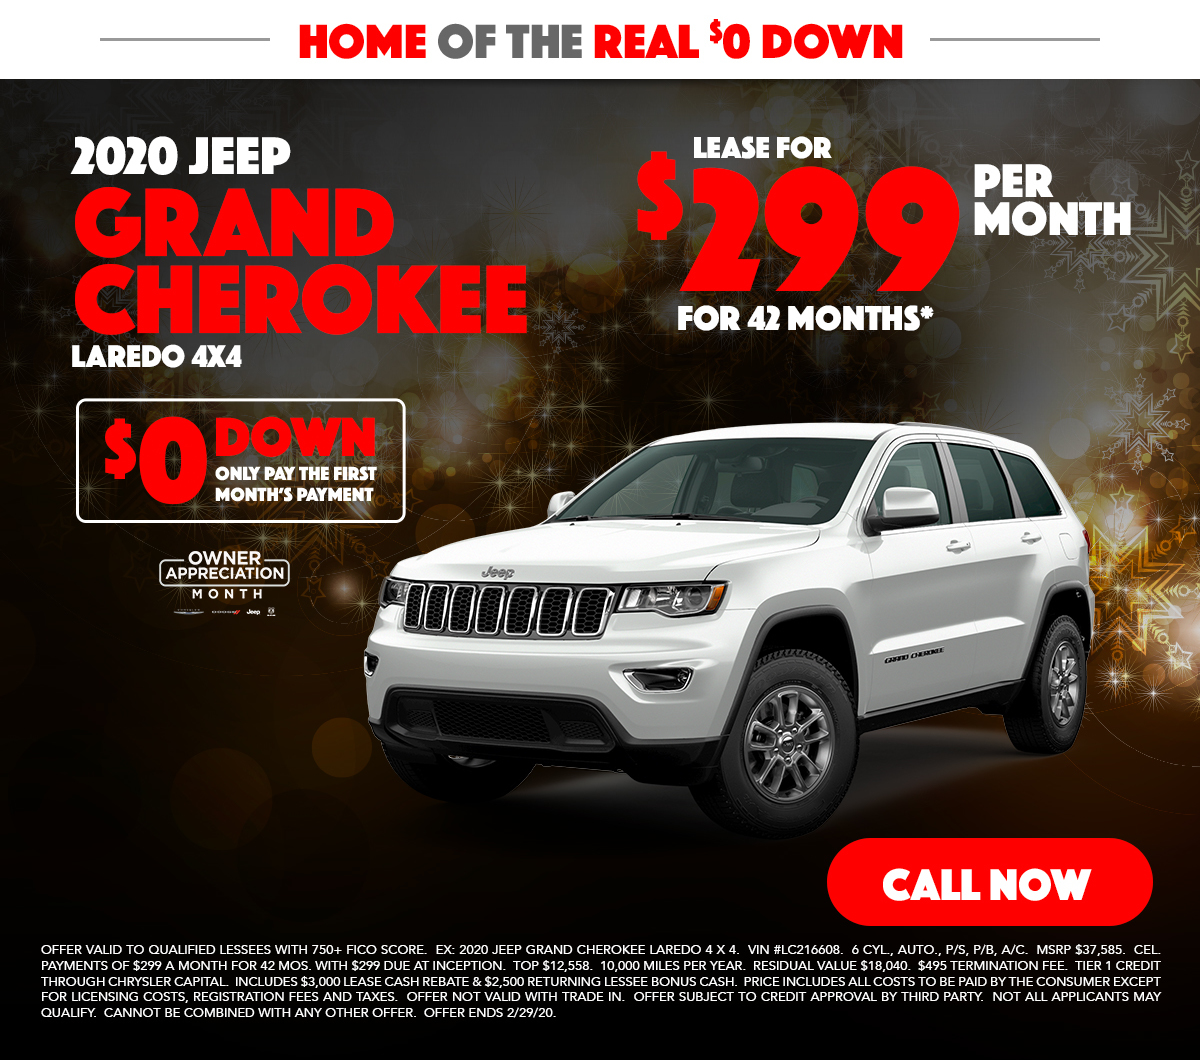 2020 Jeep Grand Cherokee 4x4 Lease Special